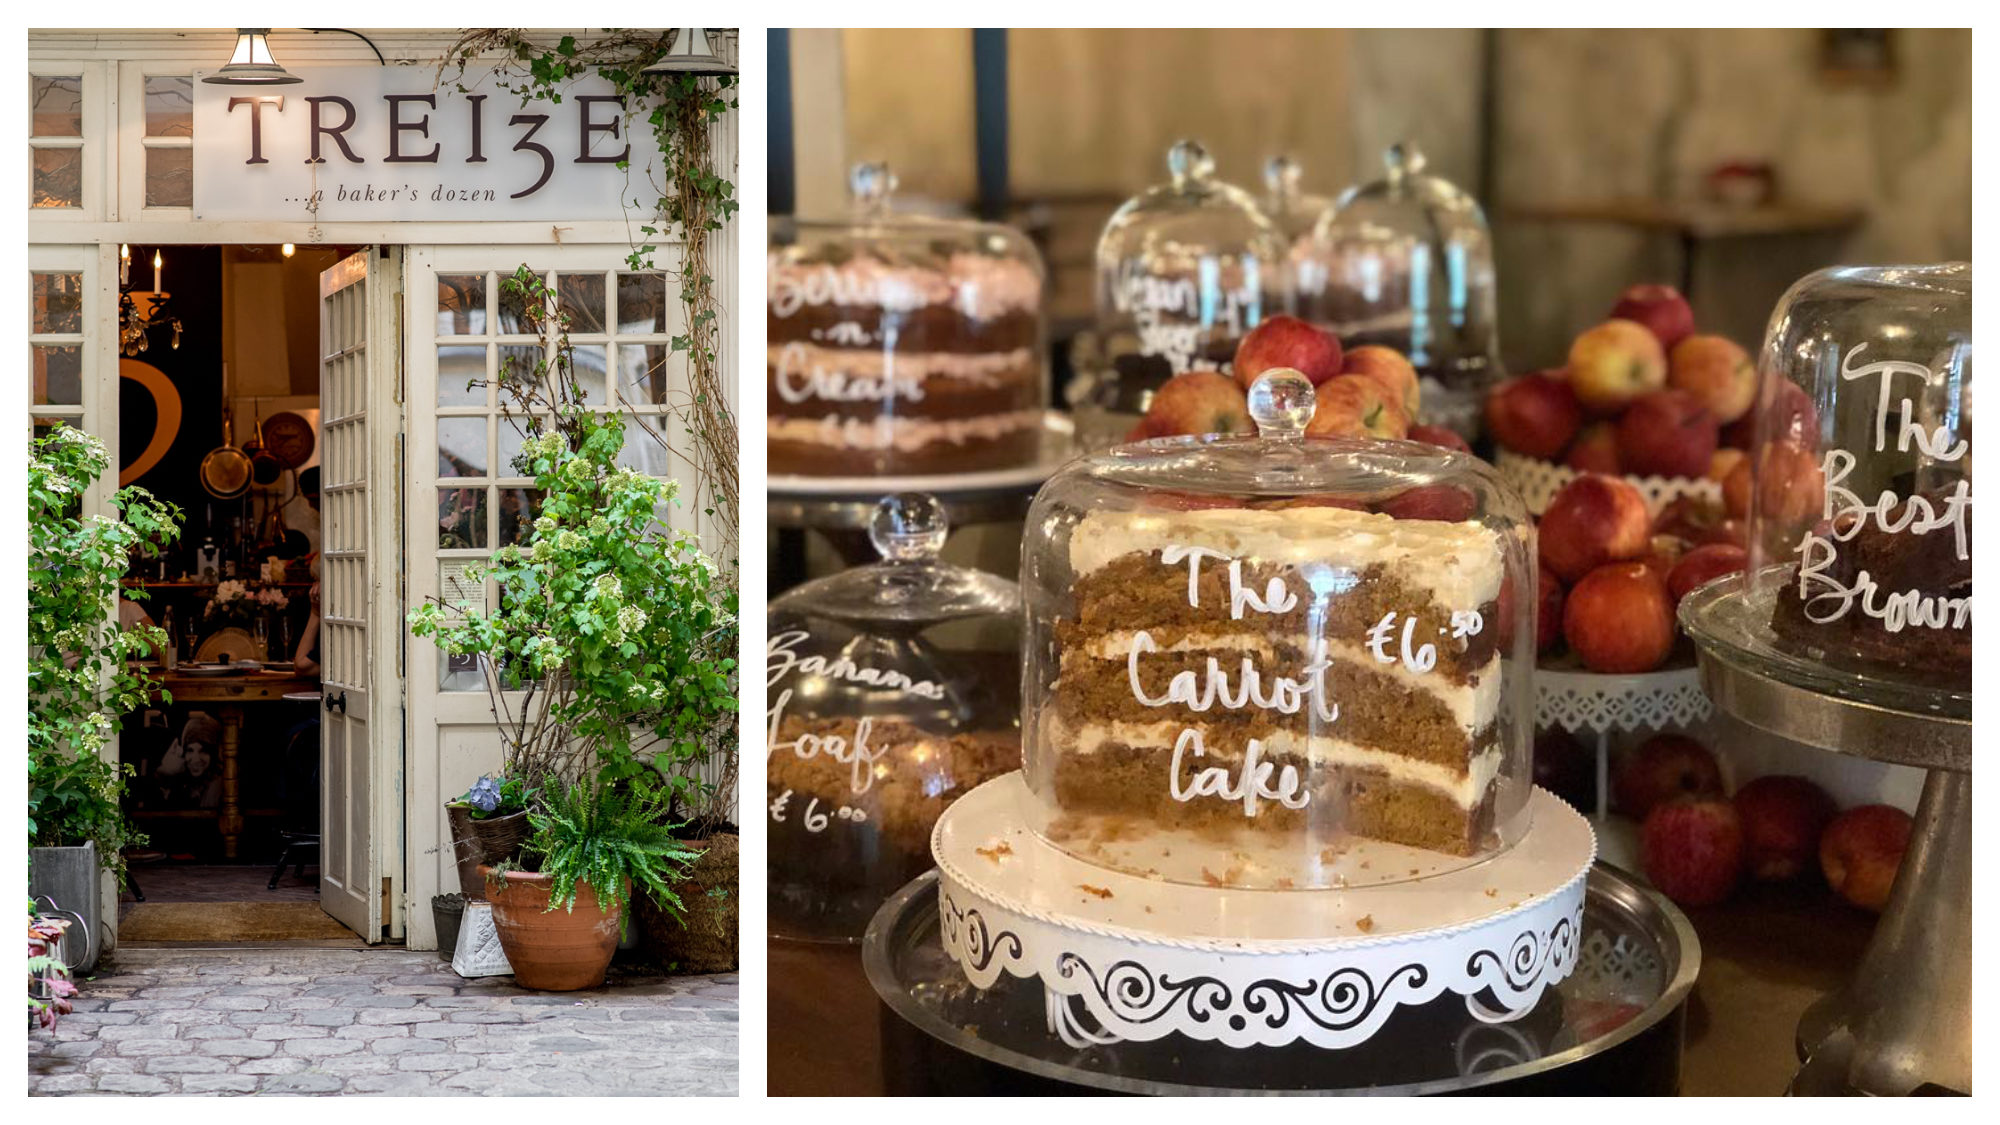 The doorway to the old location of Treize bakery (left) and its delicious cakes like carrot cake under glass bells (right).